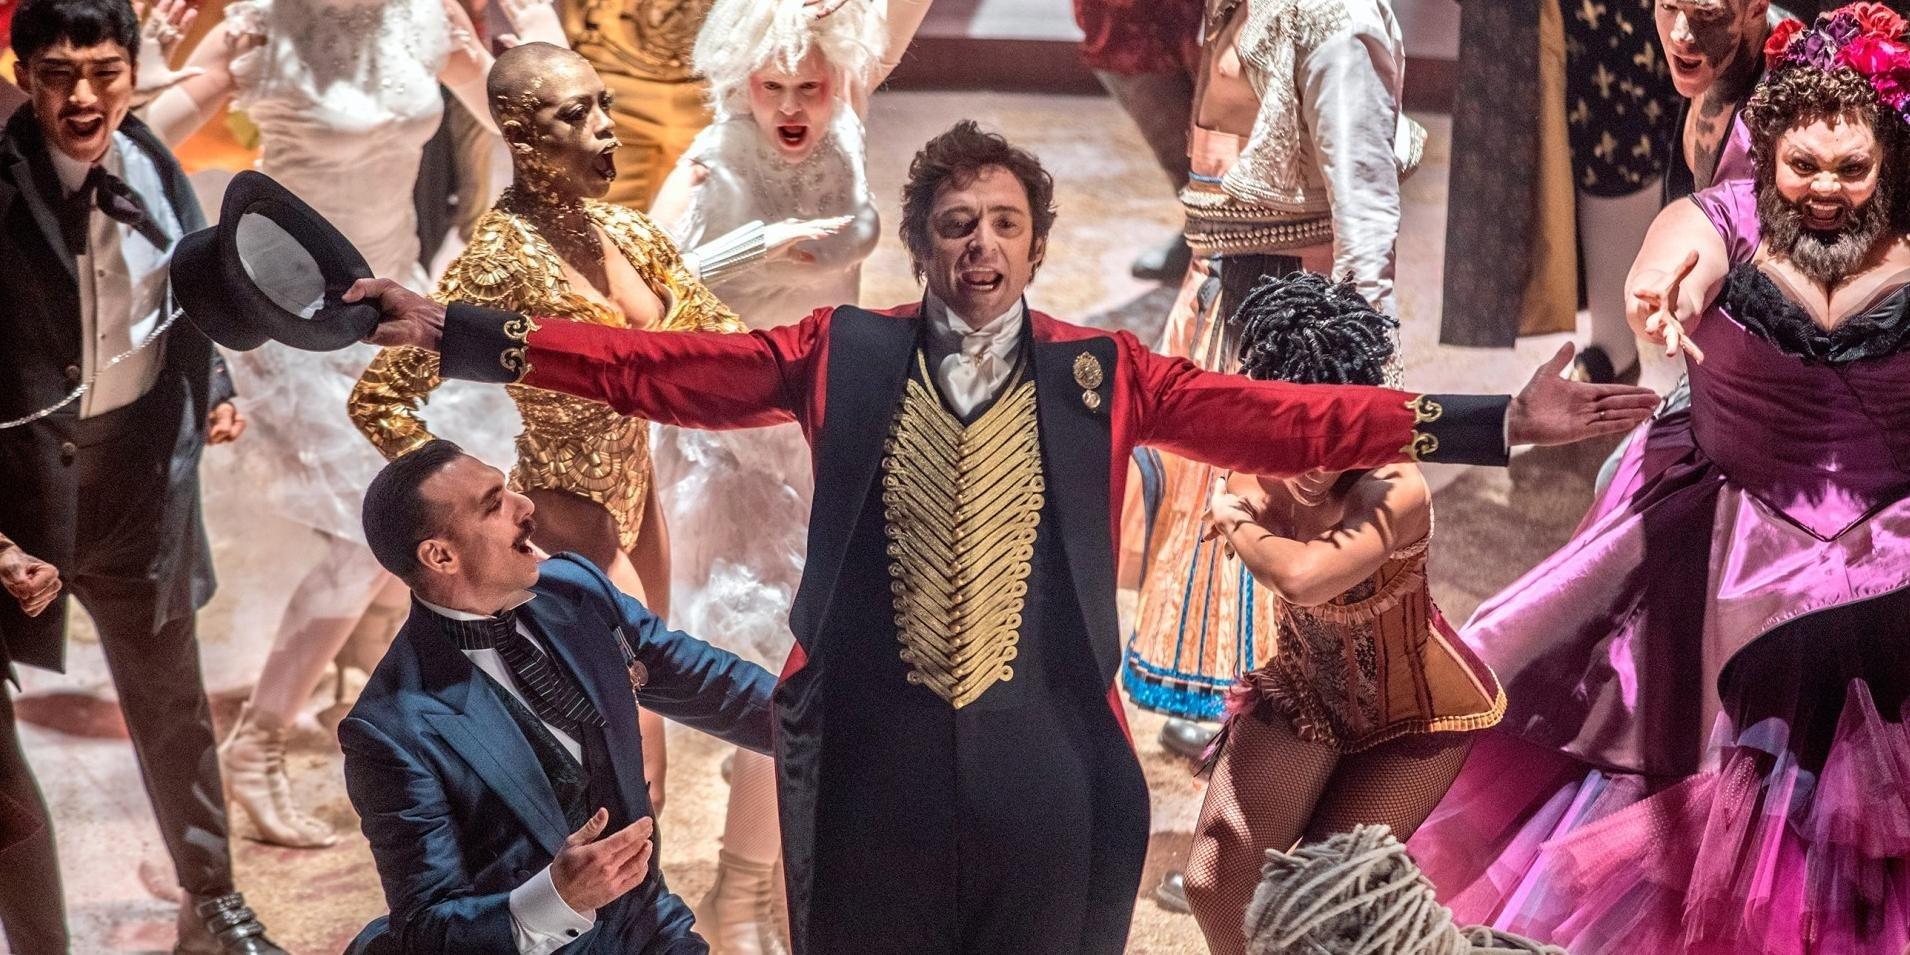 The Greatest Showman's soundtrack is the best-selling album of 2018 so far